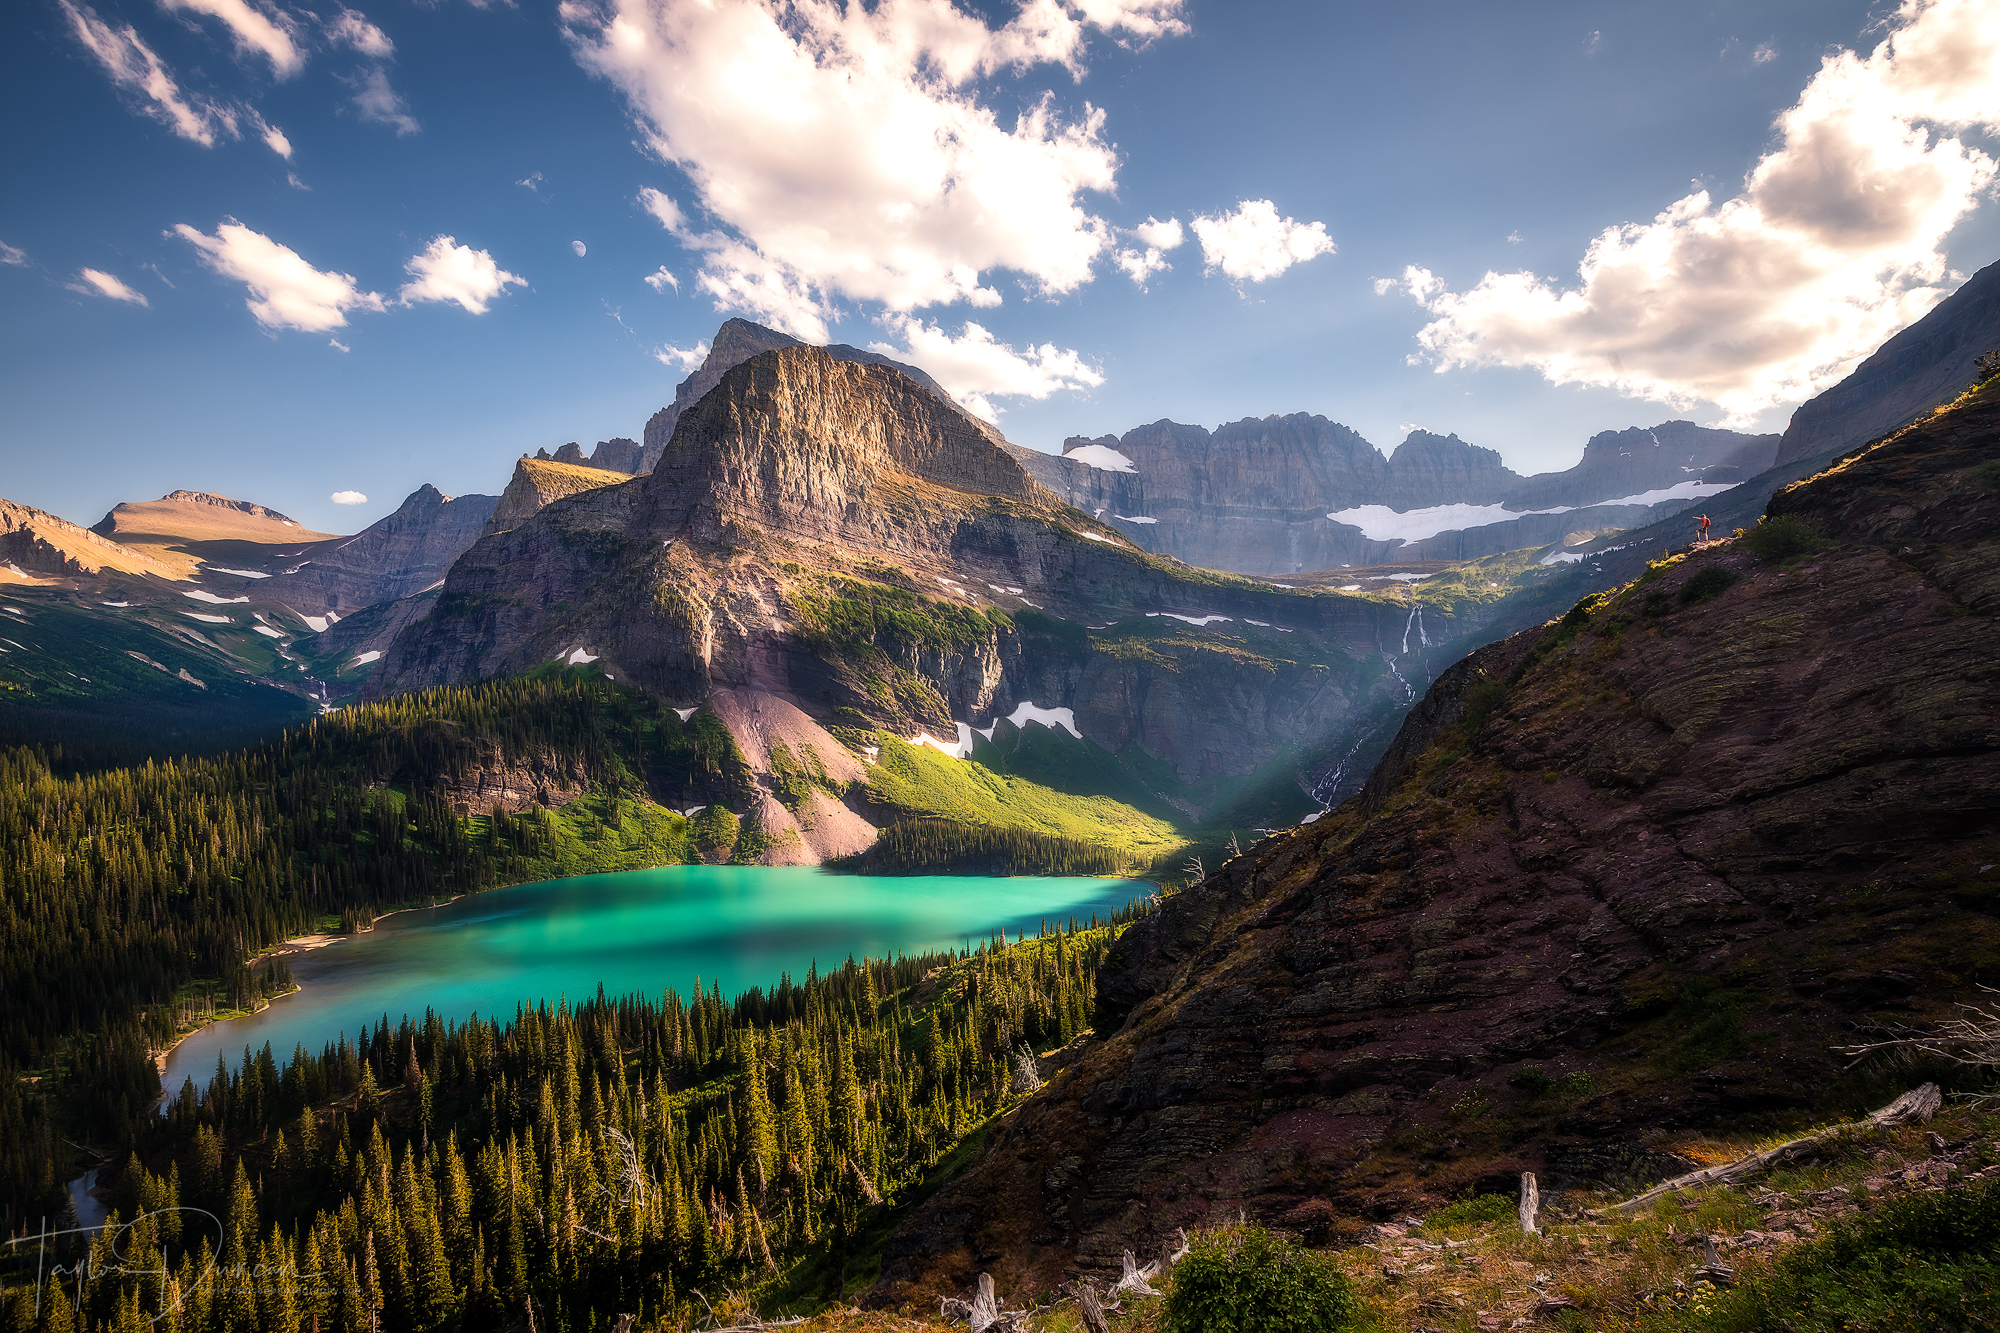 My friend Ben ( @bentretow ) overlooks Grinnell Lake late in the day as shadow starts to overtake the lake